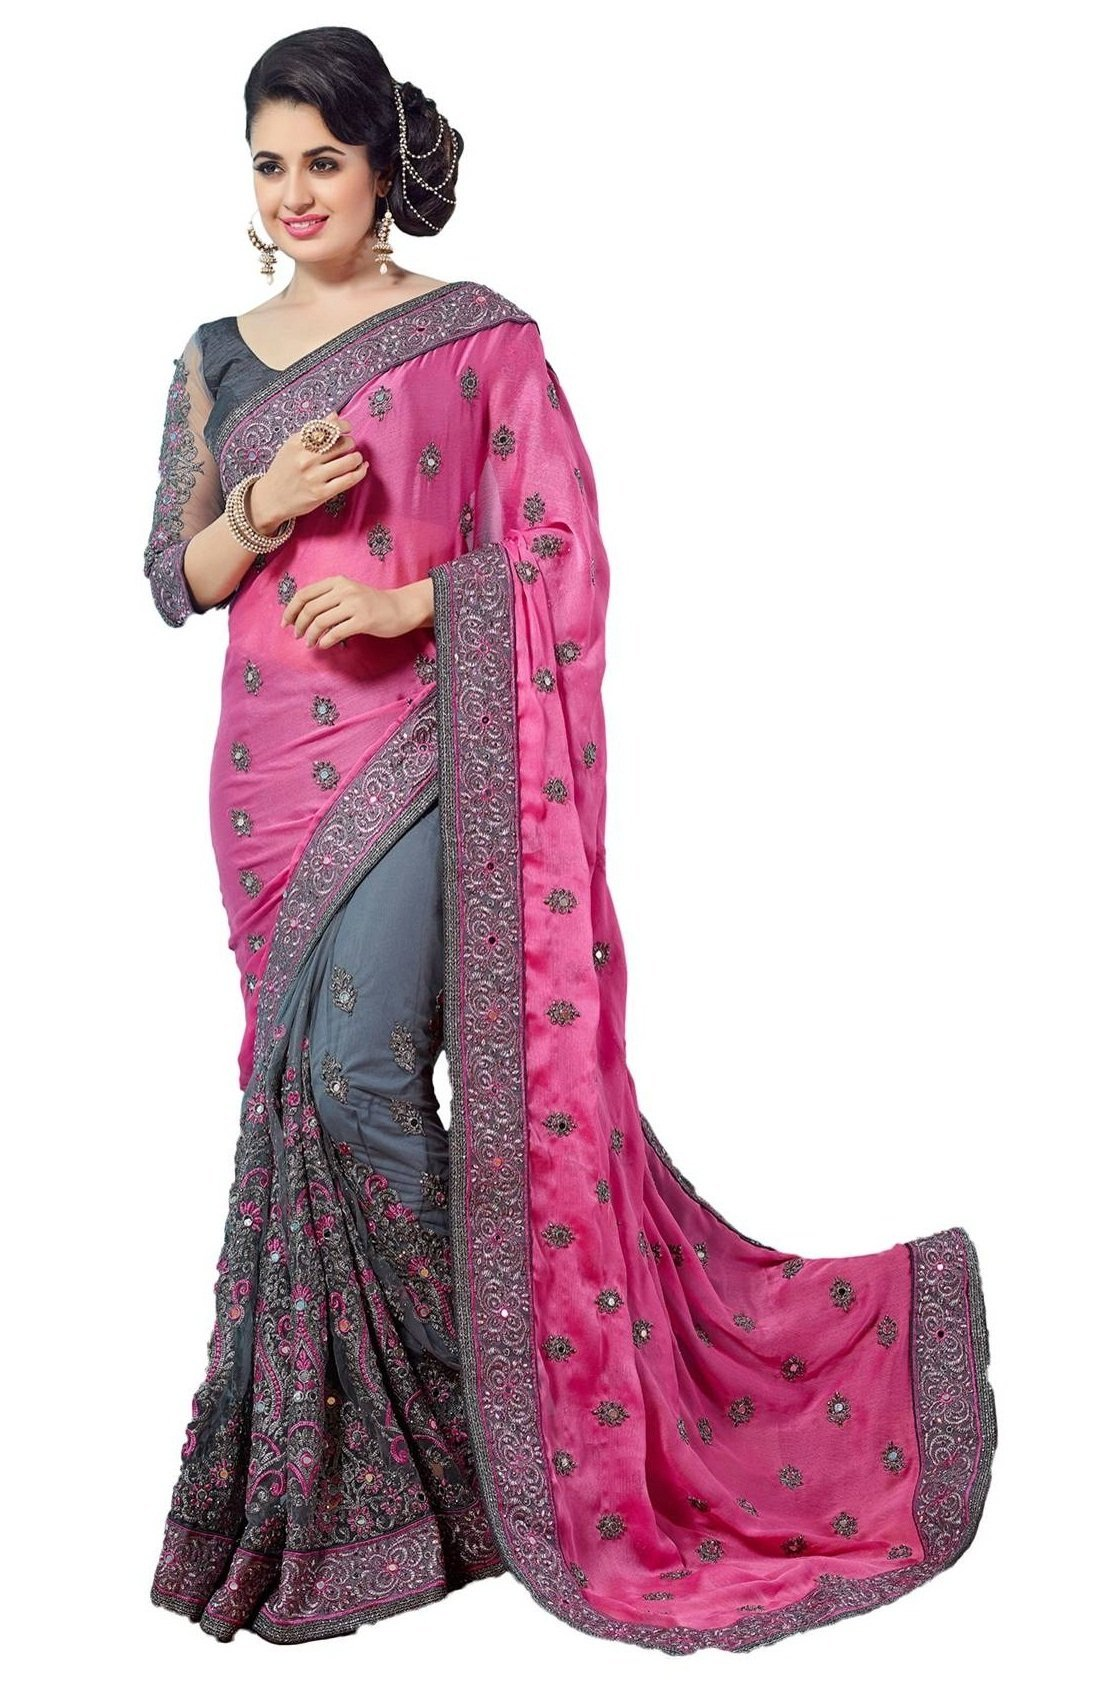 Nivah Fashion Women's Sattin Net Embroidery With Real Diamond's Sari Free Size Pink...K608A